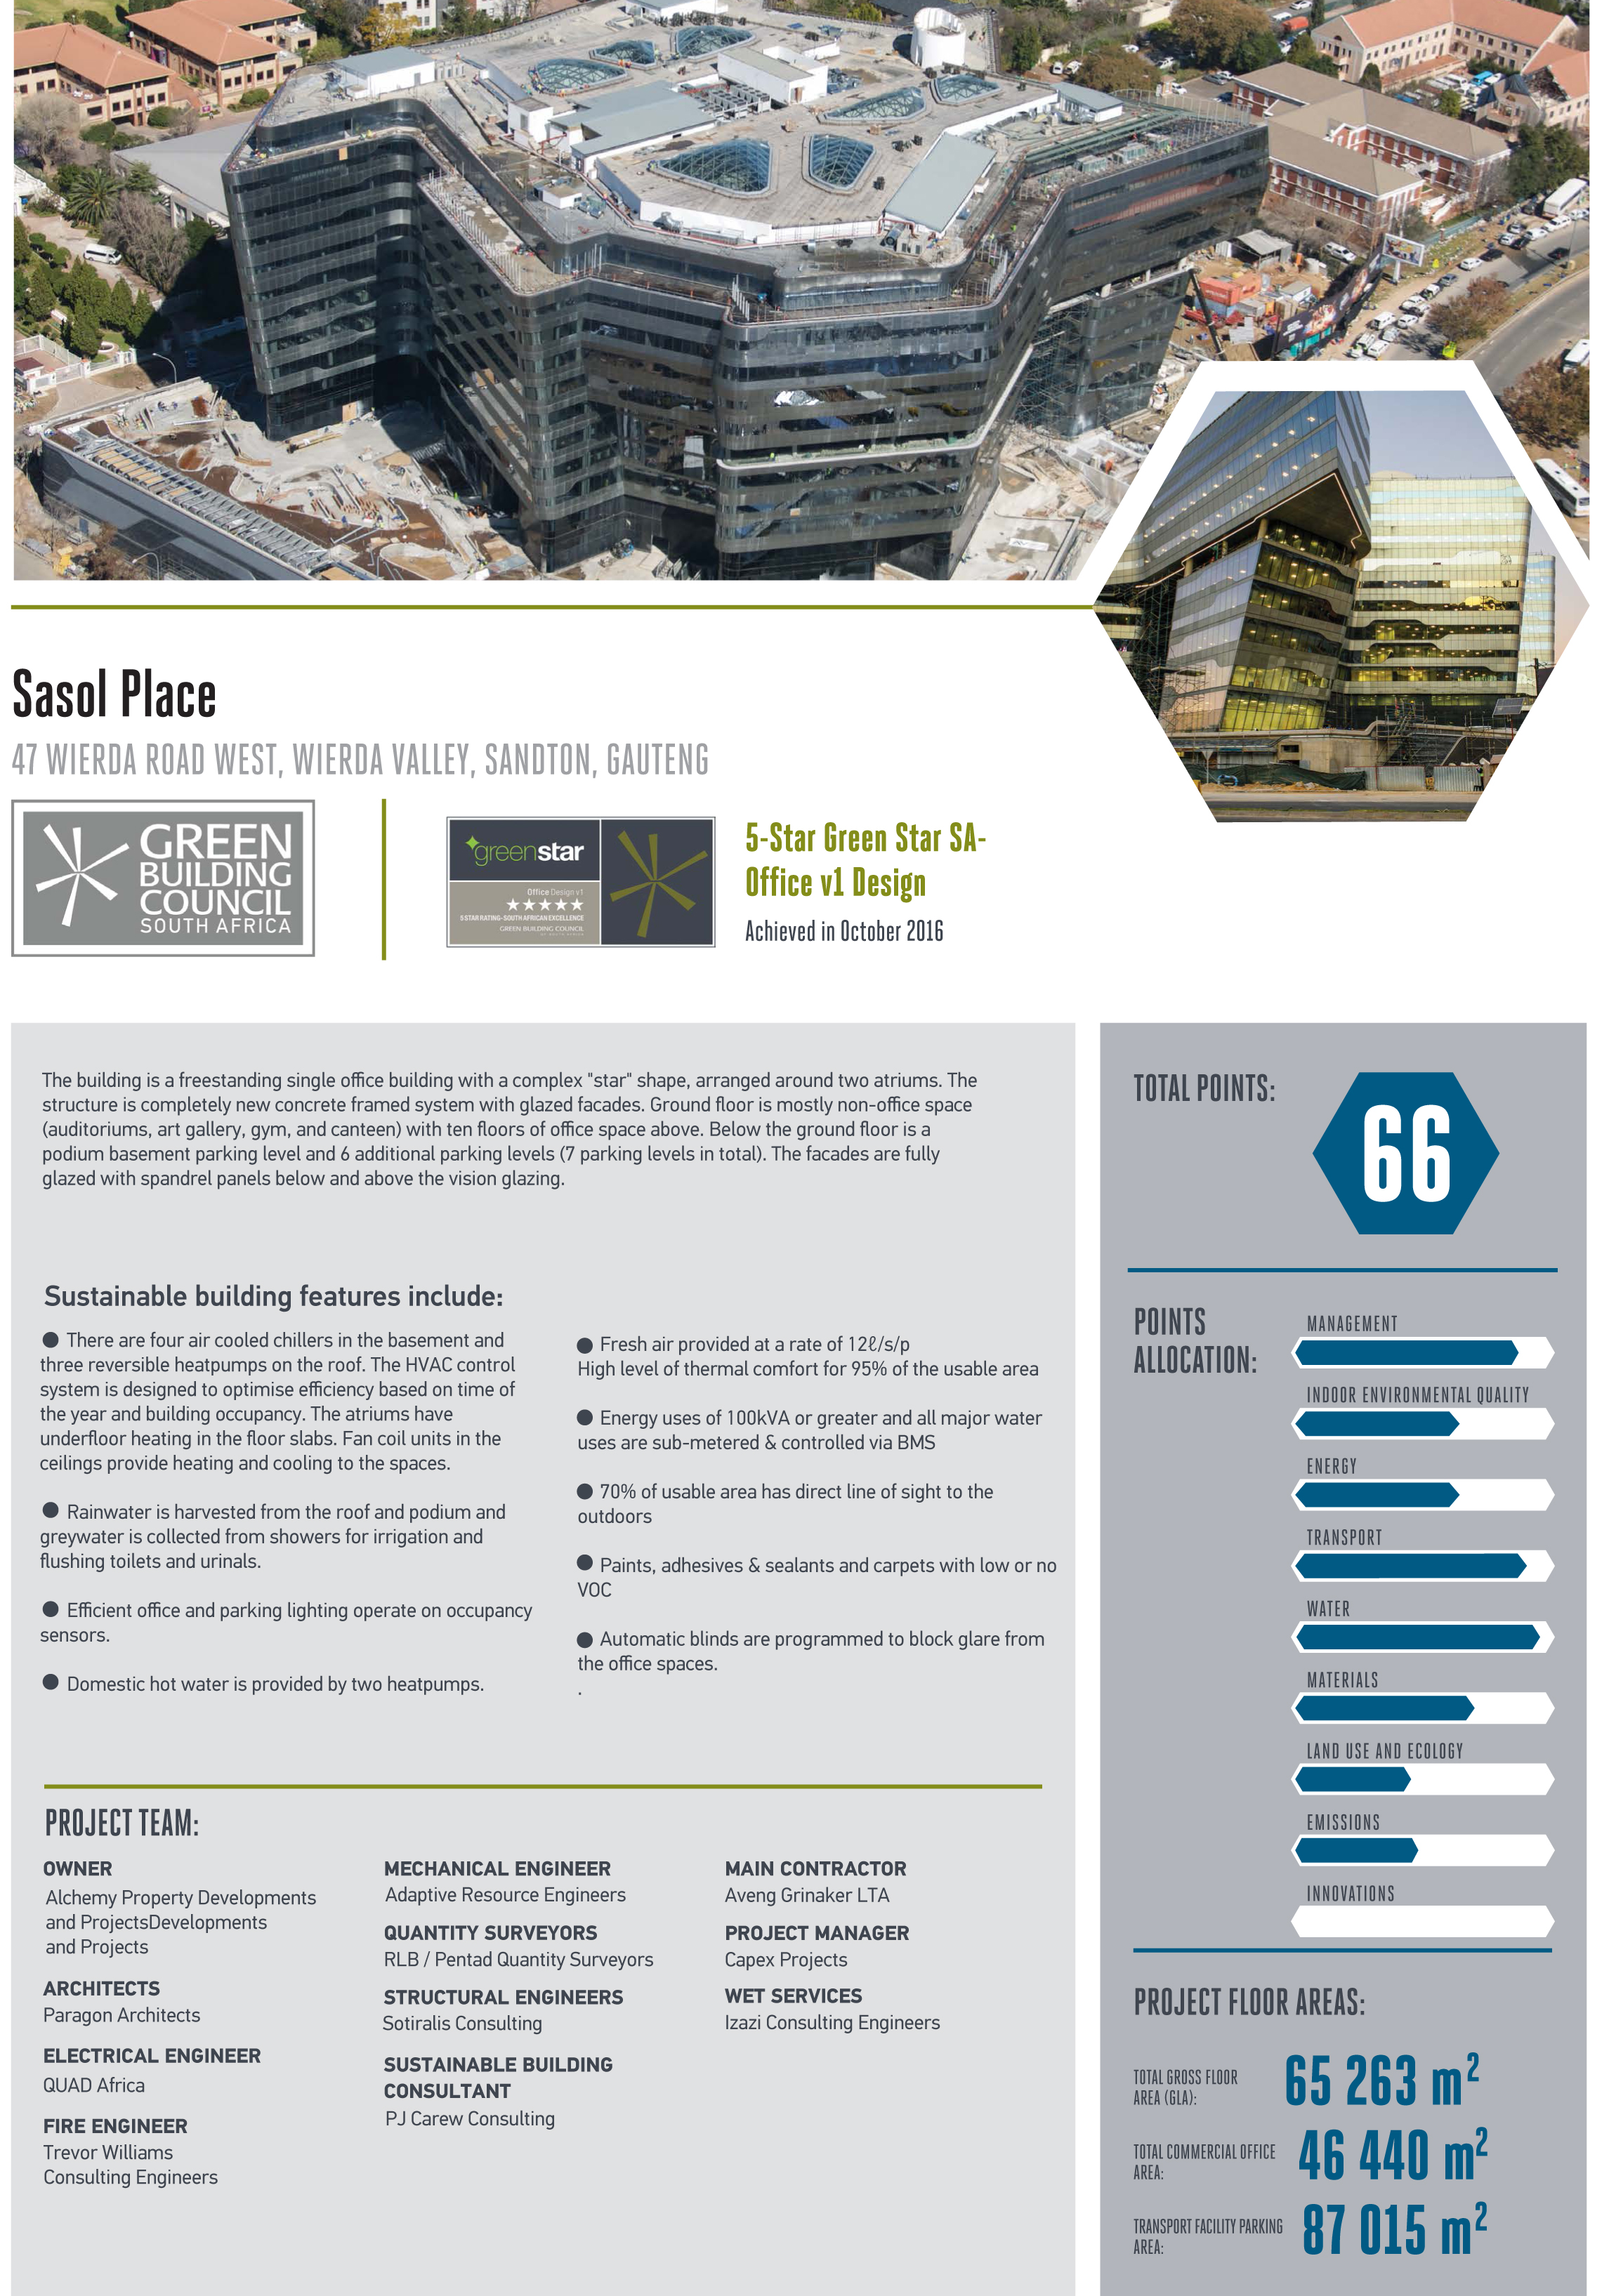 Sasol Place Receives its GBCSA rating